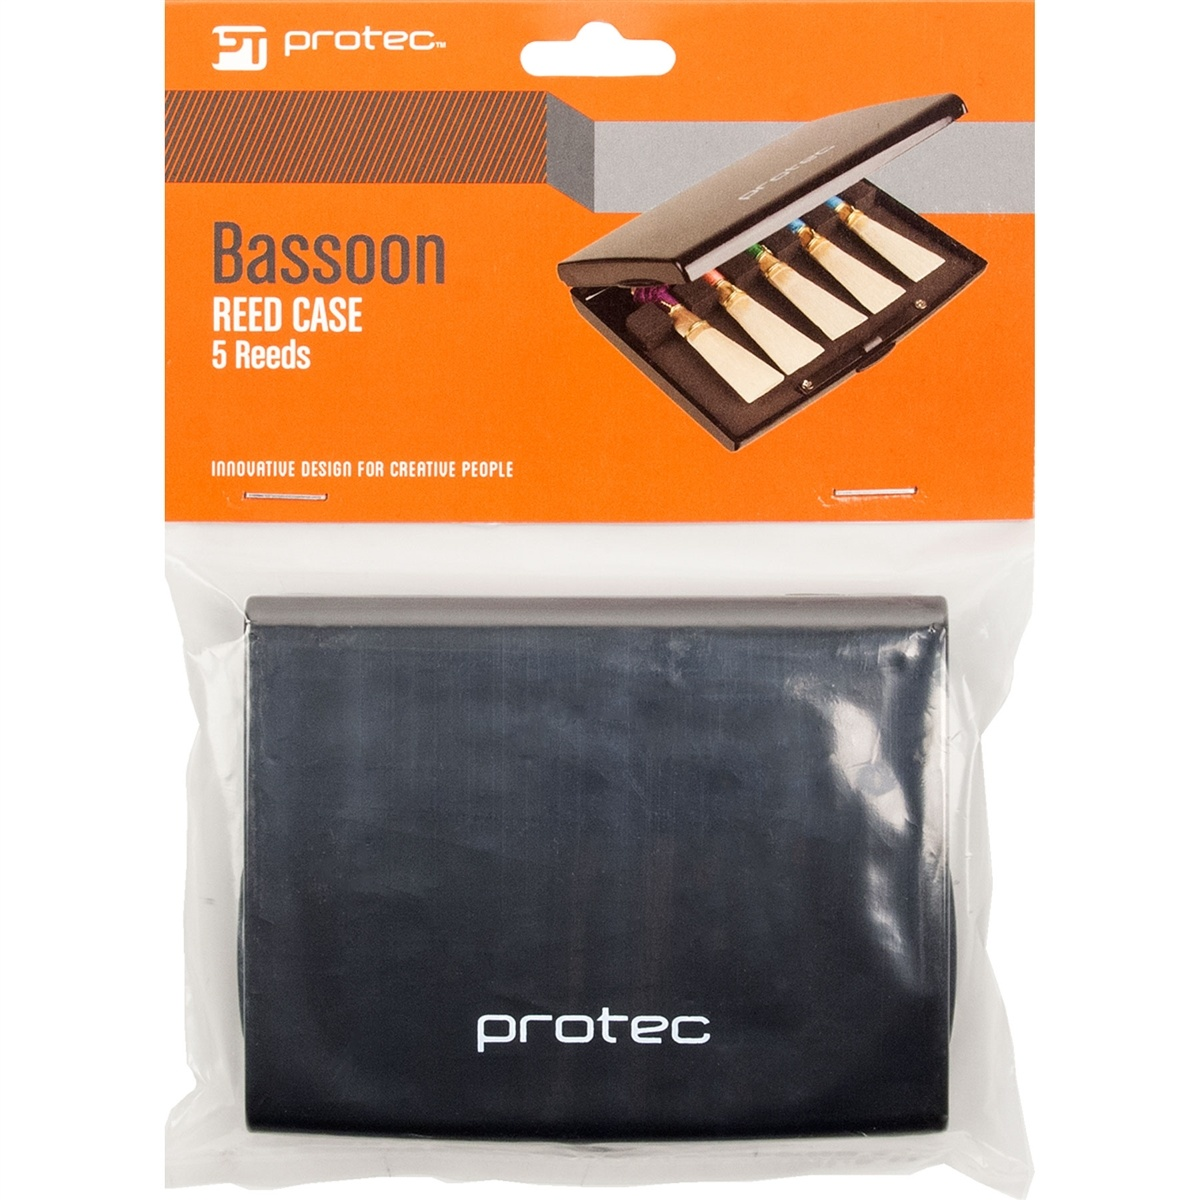 Protec Protec Bassoon Reed Case (5 reeds)